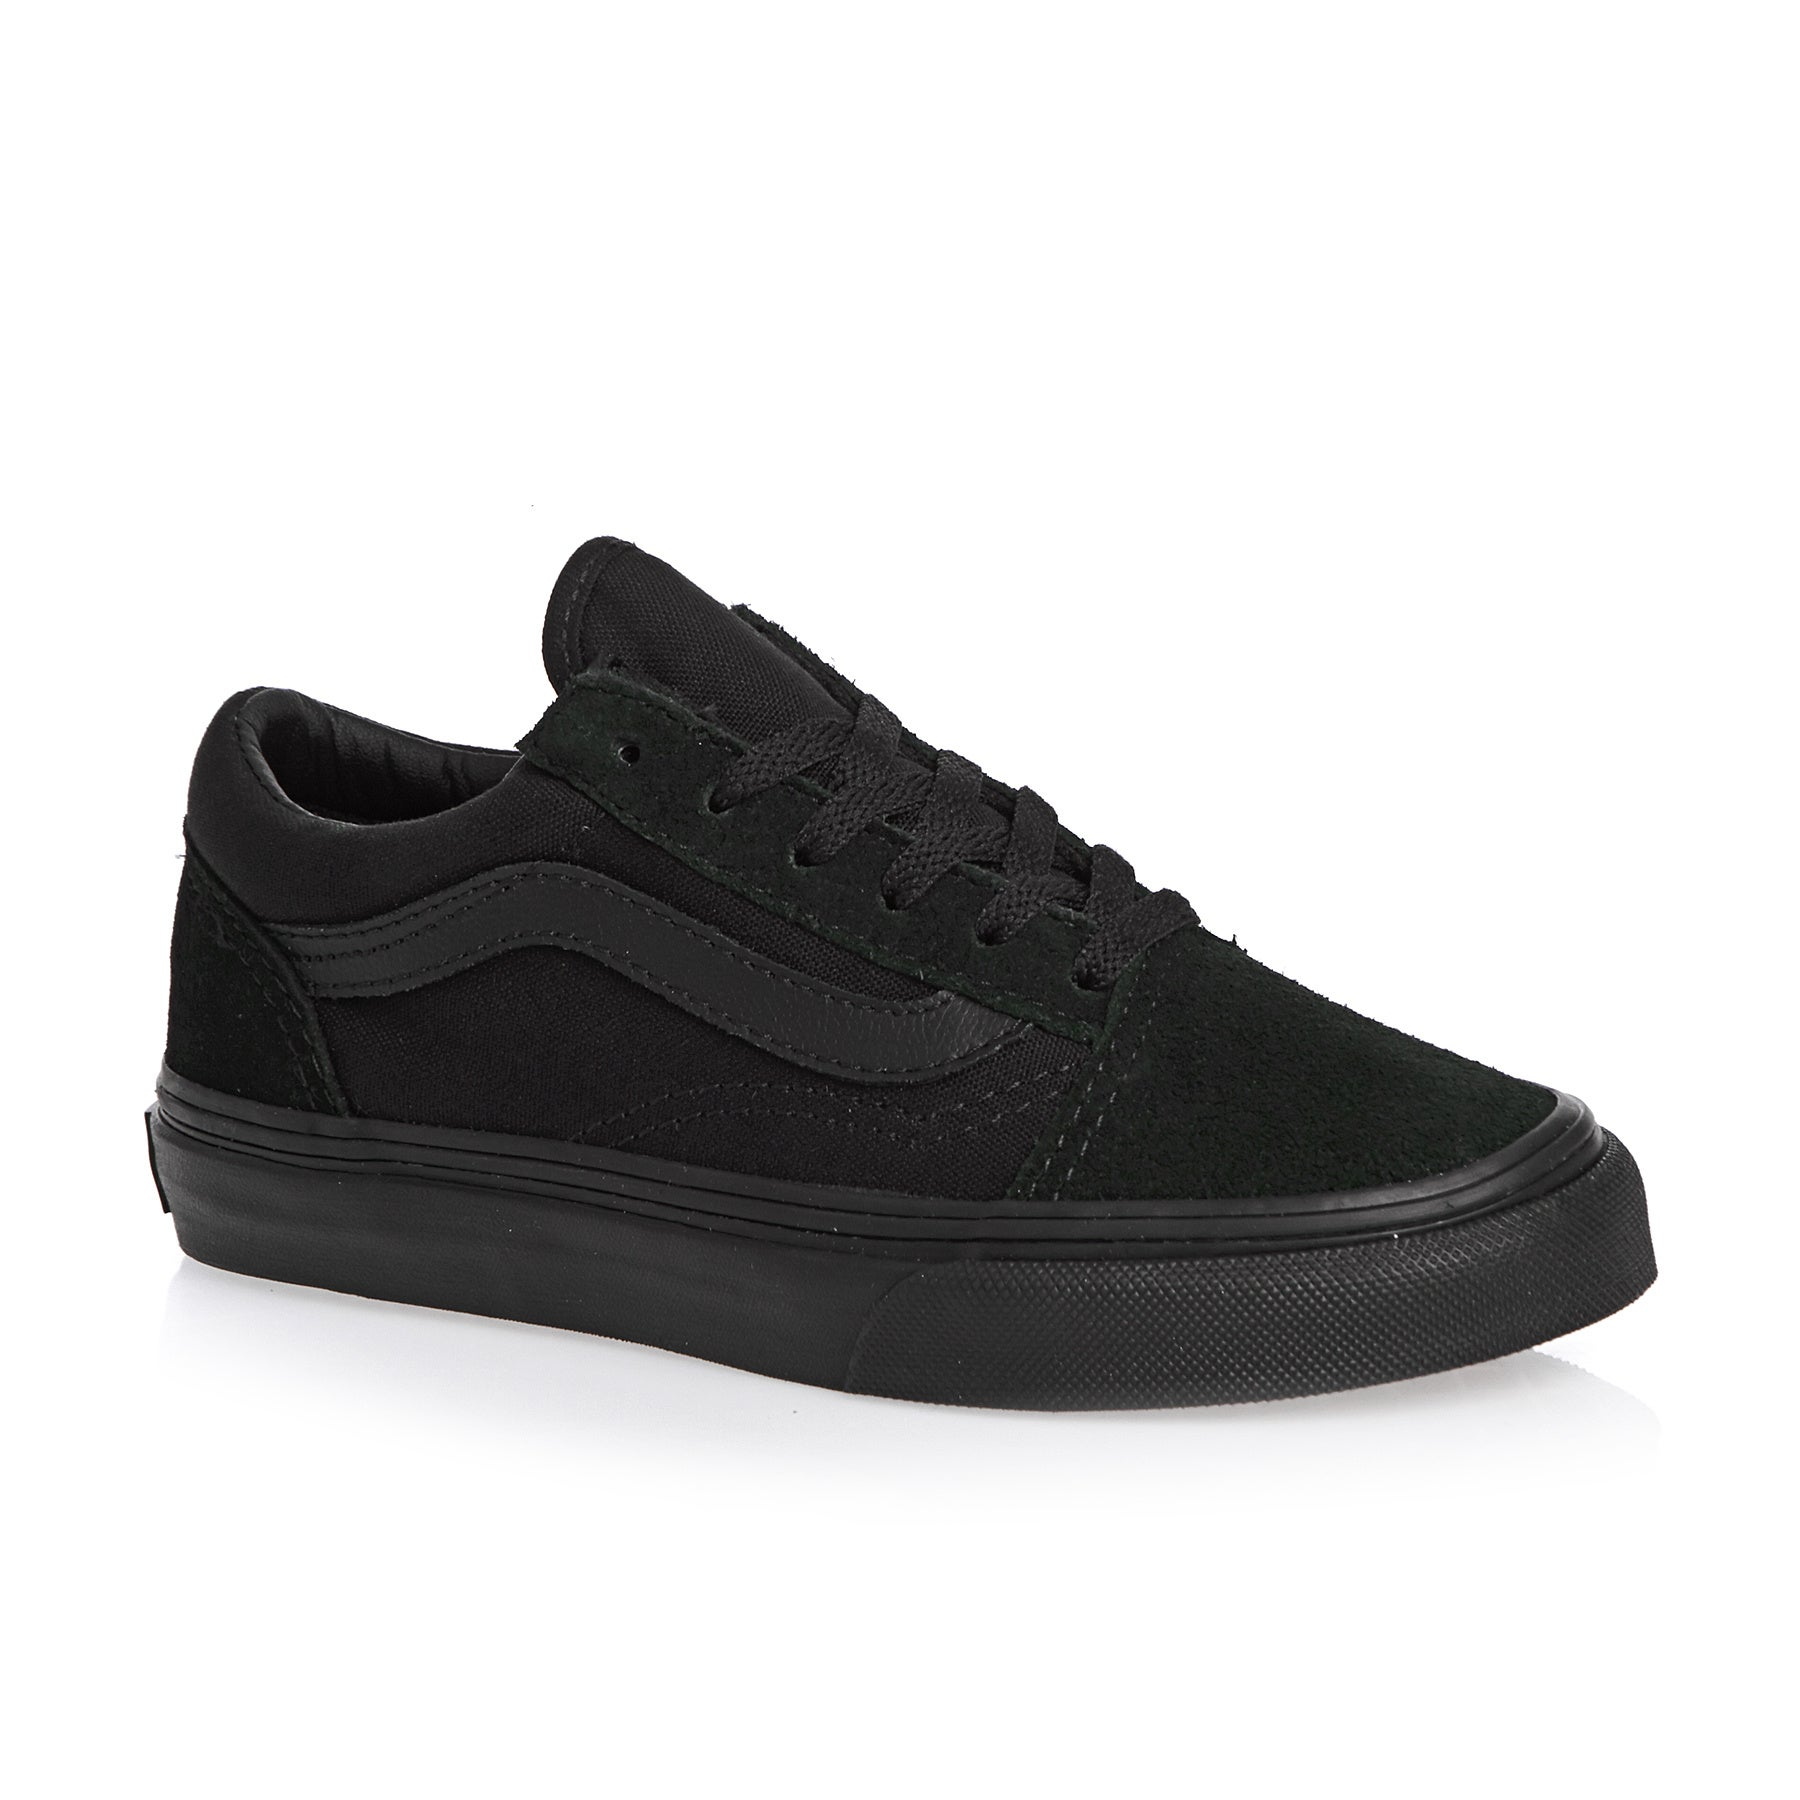 Vans Old Skool Boys Shoes - Blk/Blk